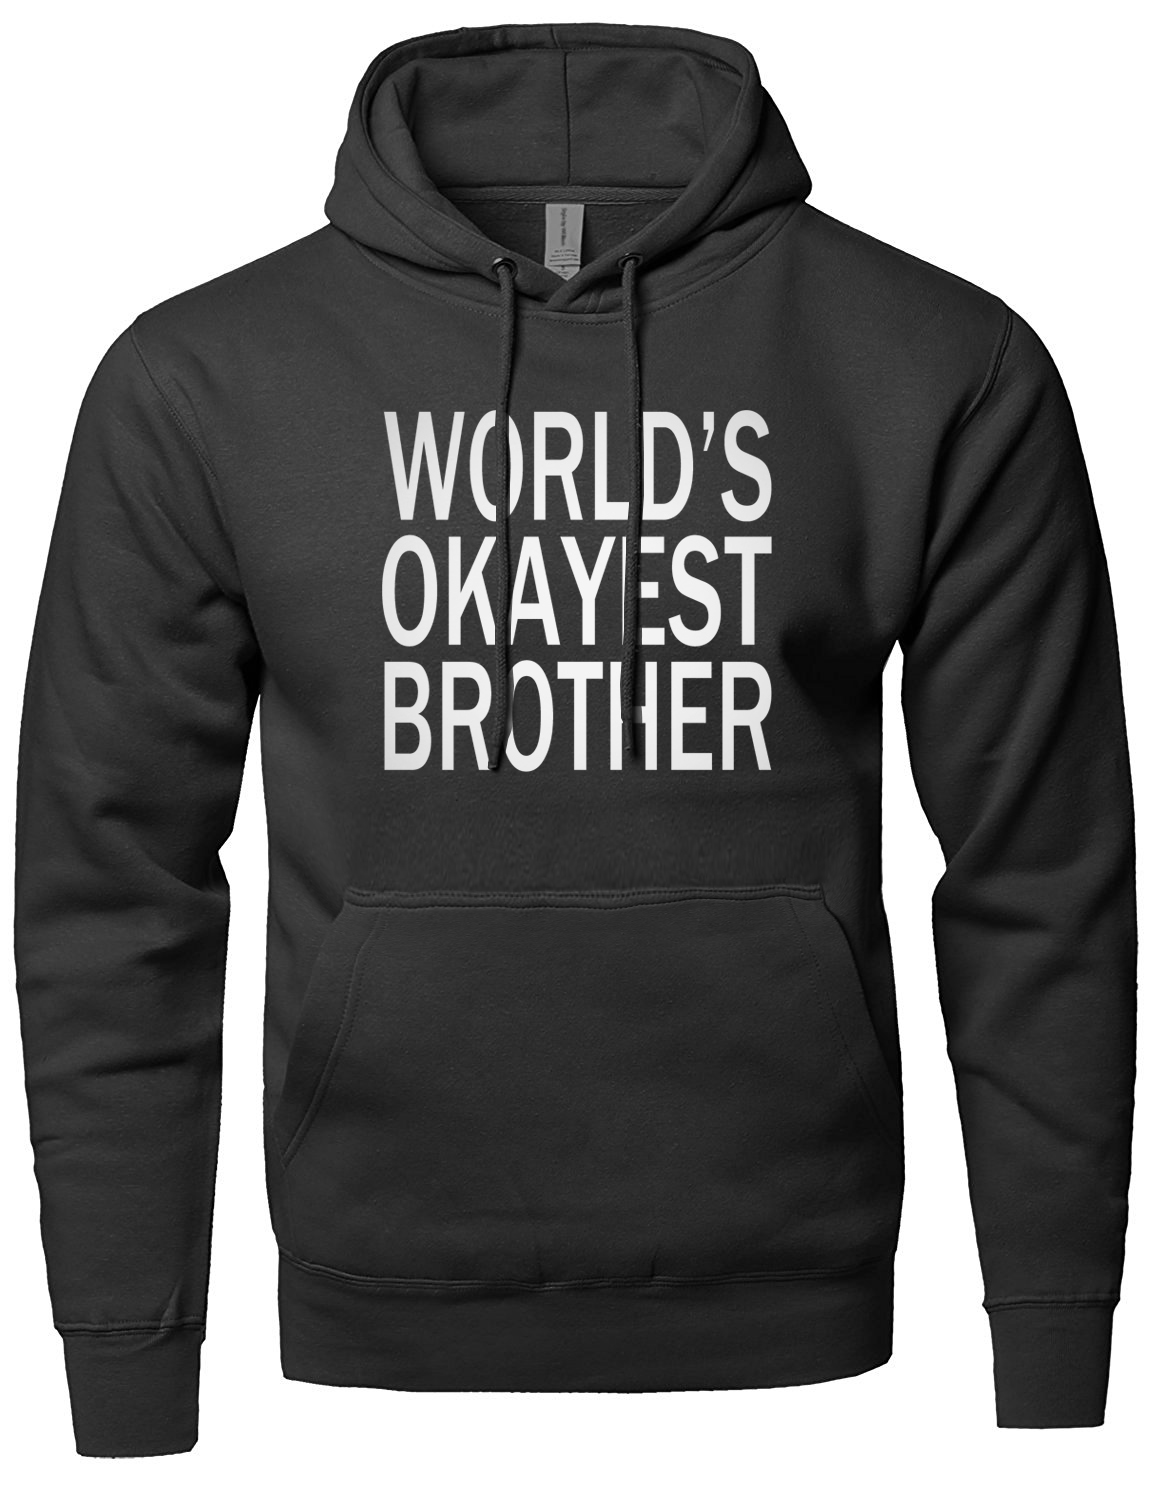 World's Okayest Brother sweatshirt Funny Siblings hooded men clothing for Brothers funny hoodies 2019 autumn winter new hot sale